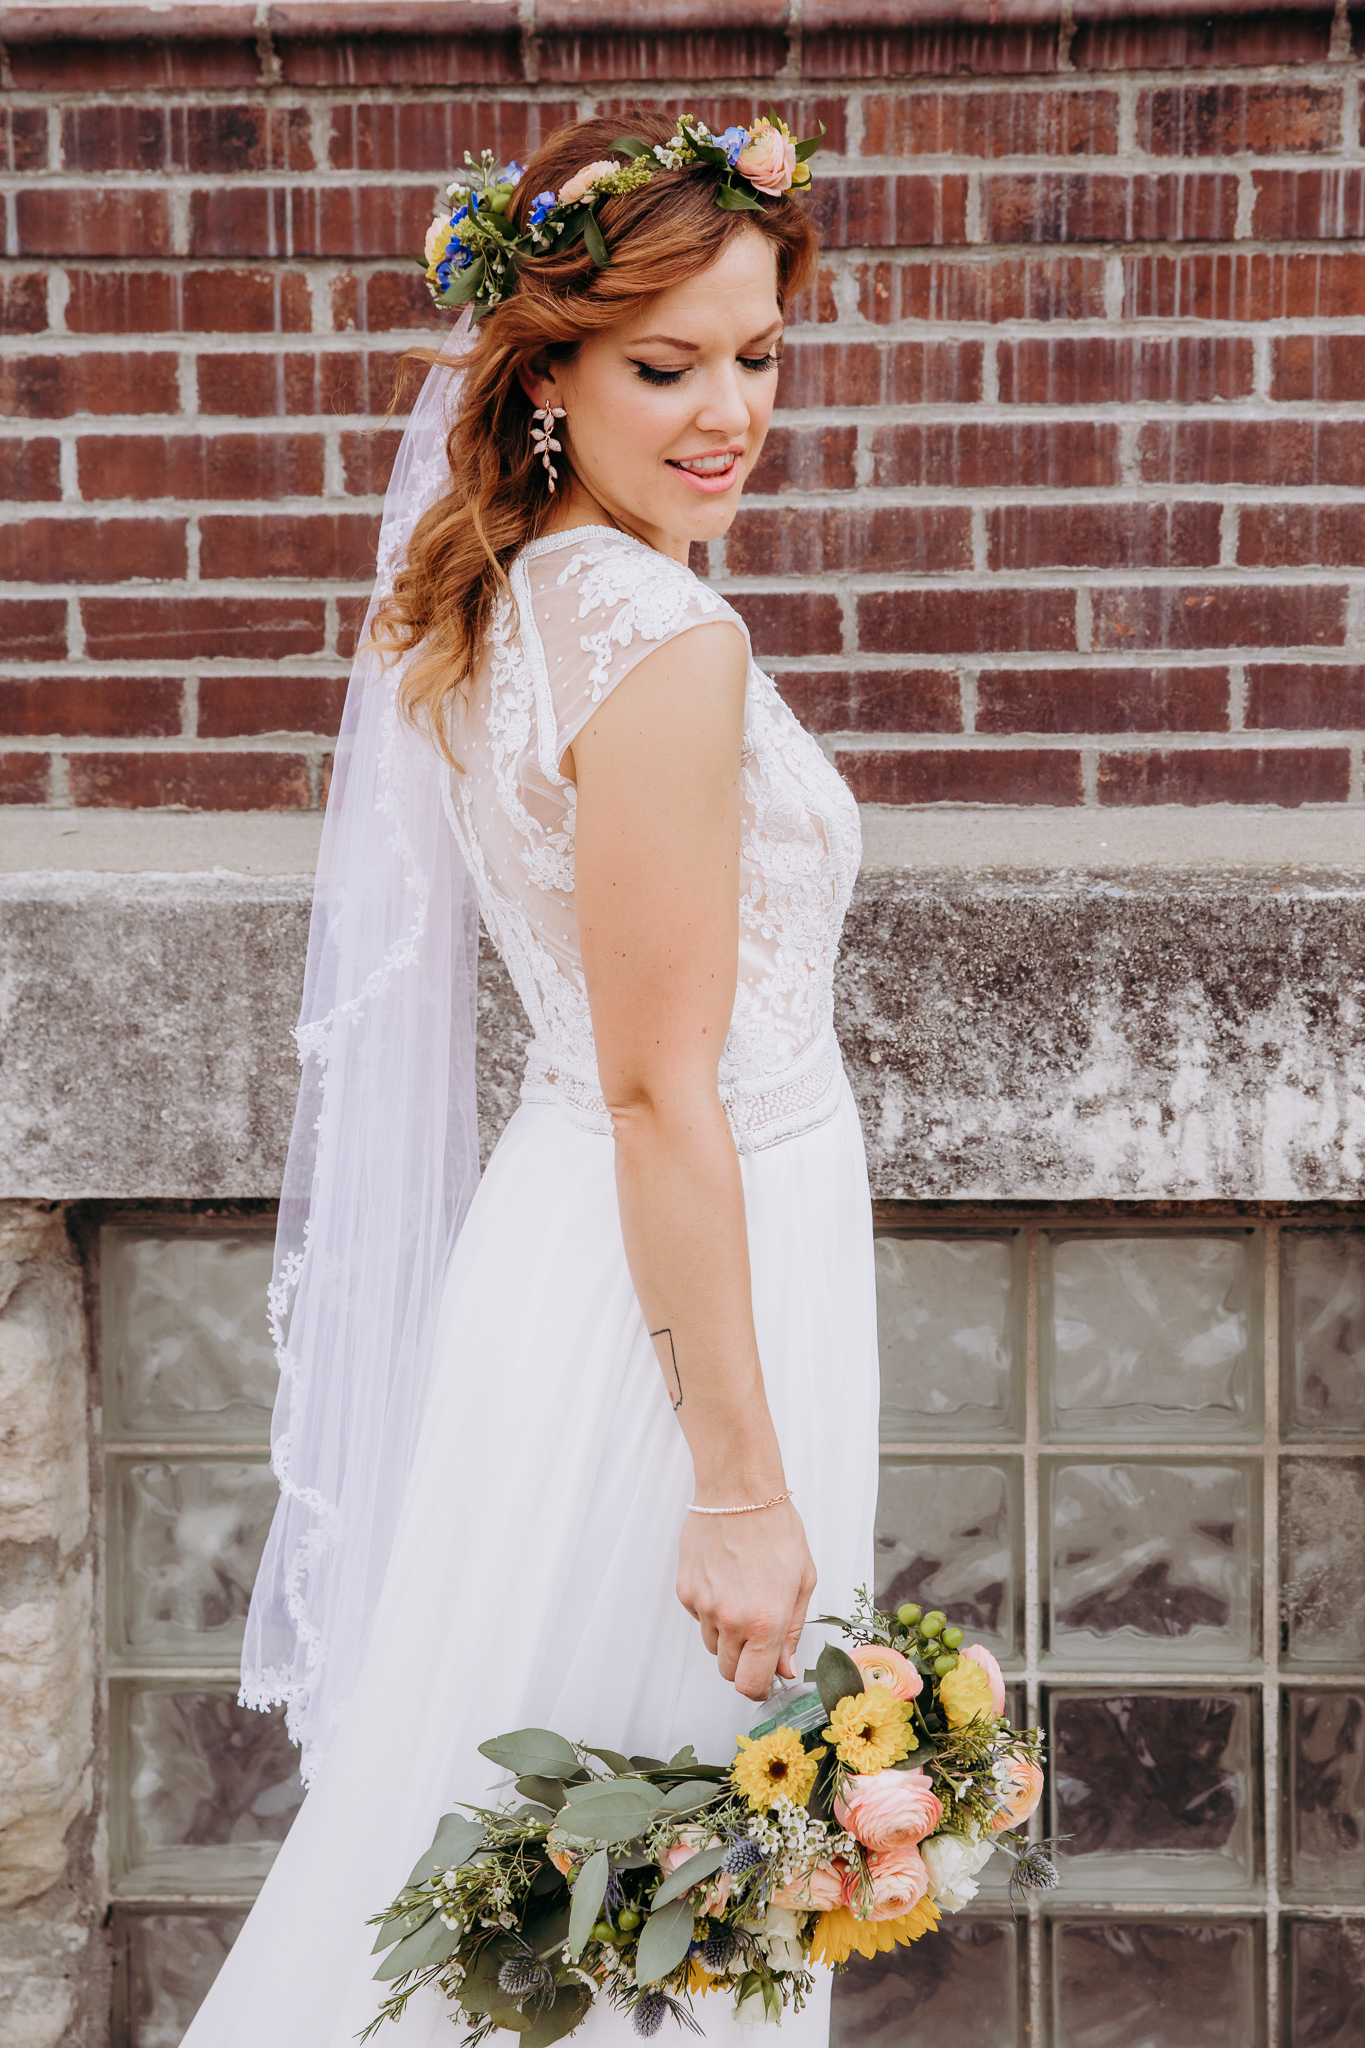 Wedding Photography in Downtown Kansas City by Merry Ohler (1)